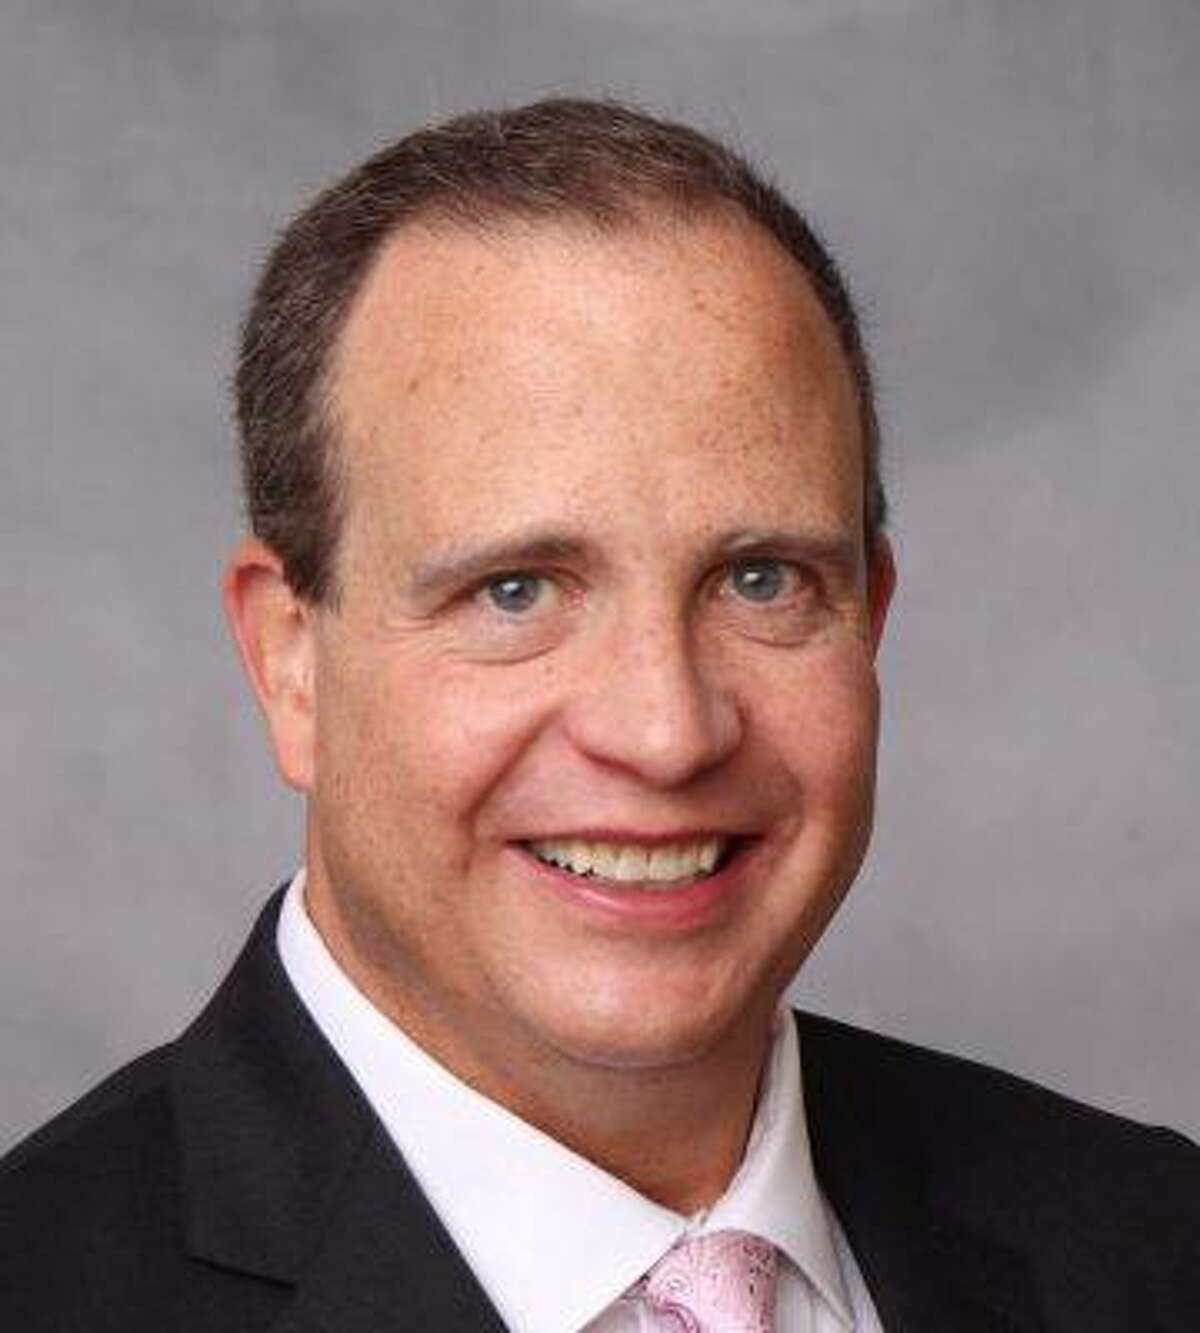 Chief Clinical Officer at the Silver Hill Hospital in New Canaan Dr. Michael Groat Ph.D. is going to speak in a virtual presentation being offered by the New Canaan Library titled